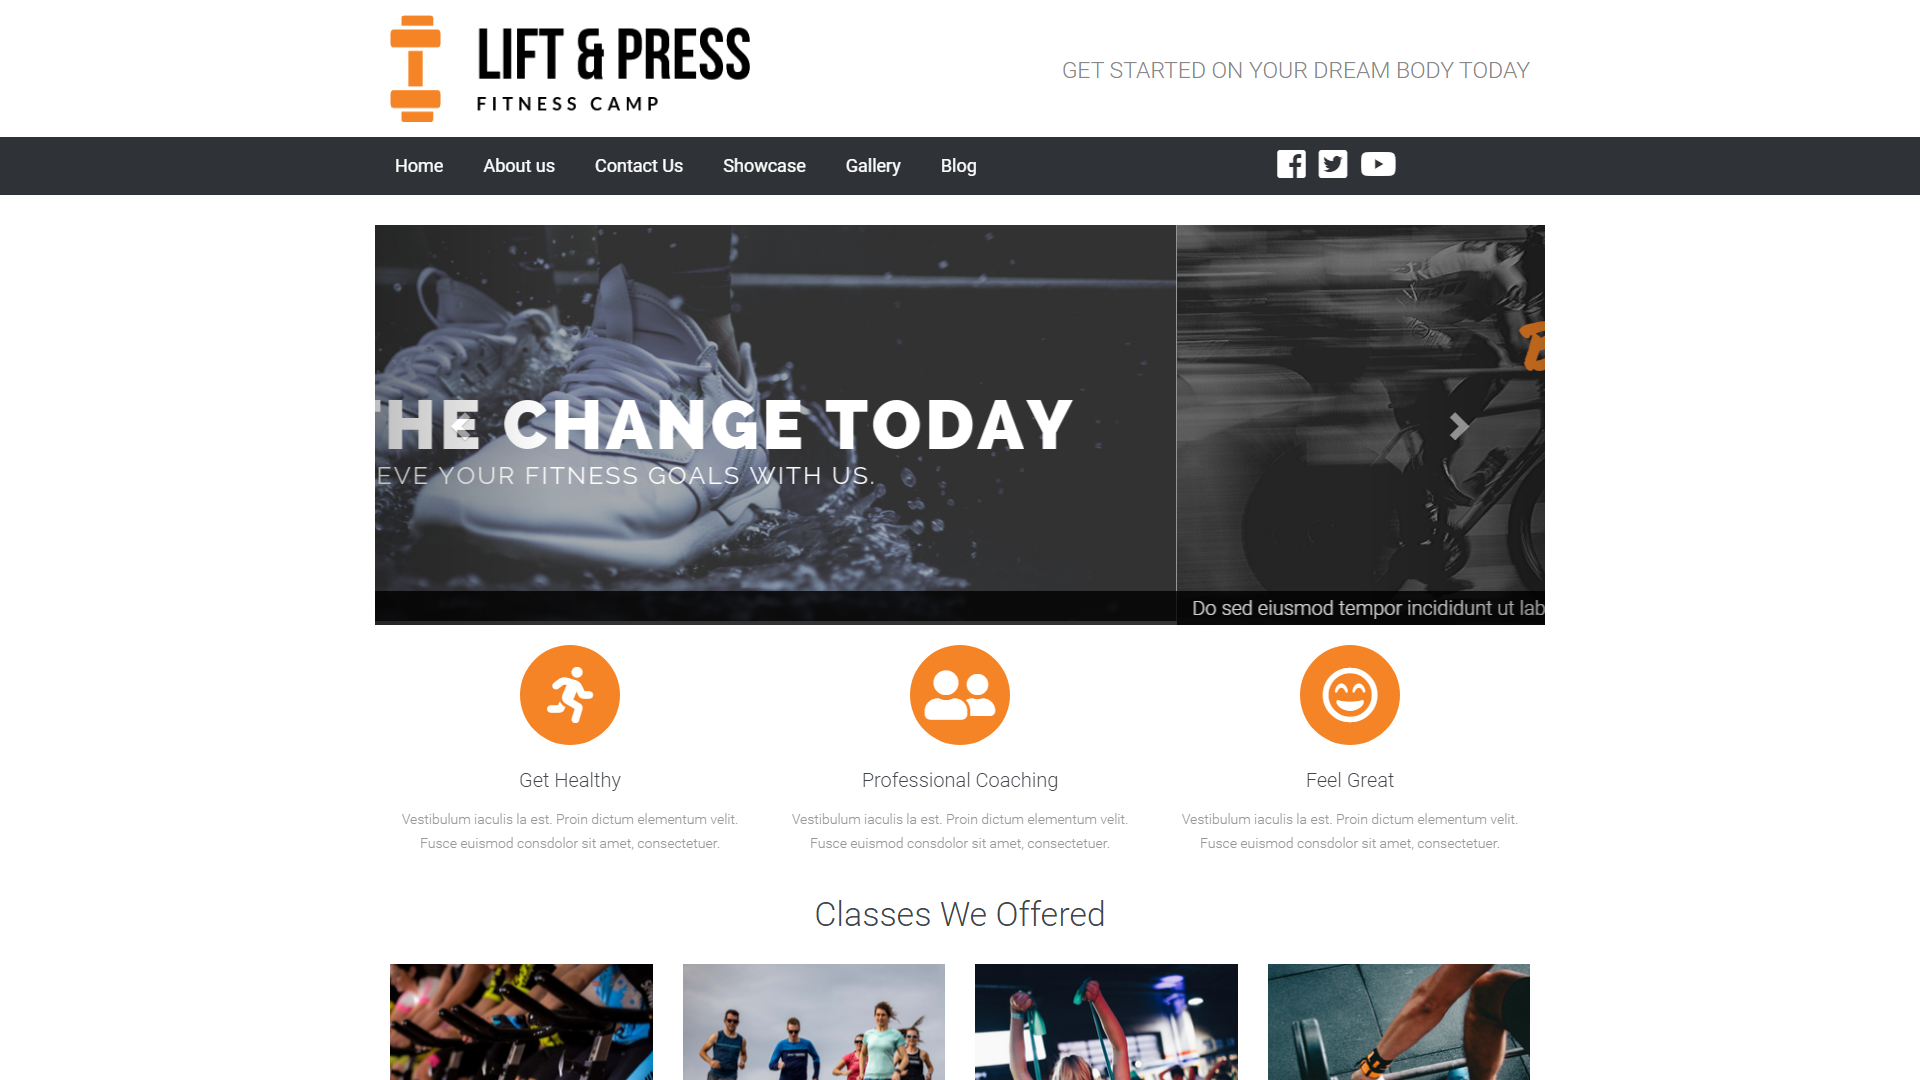 Lift & Press, eSolve Showcase Website Template